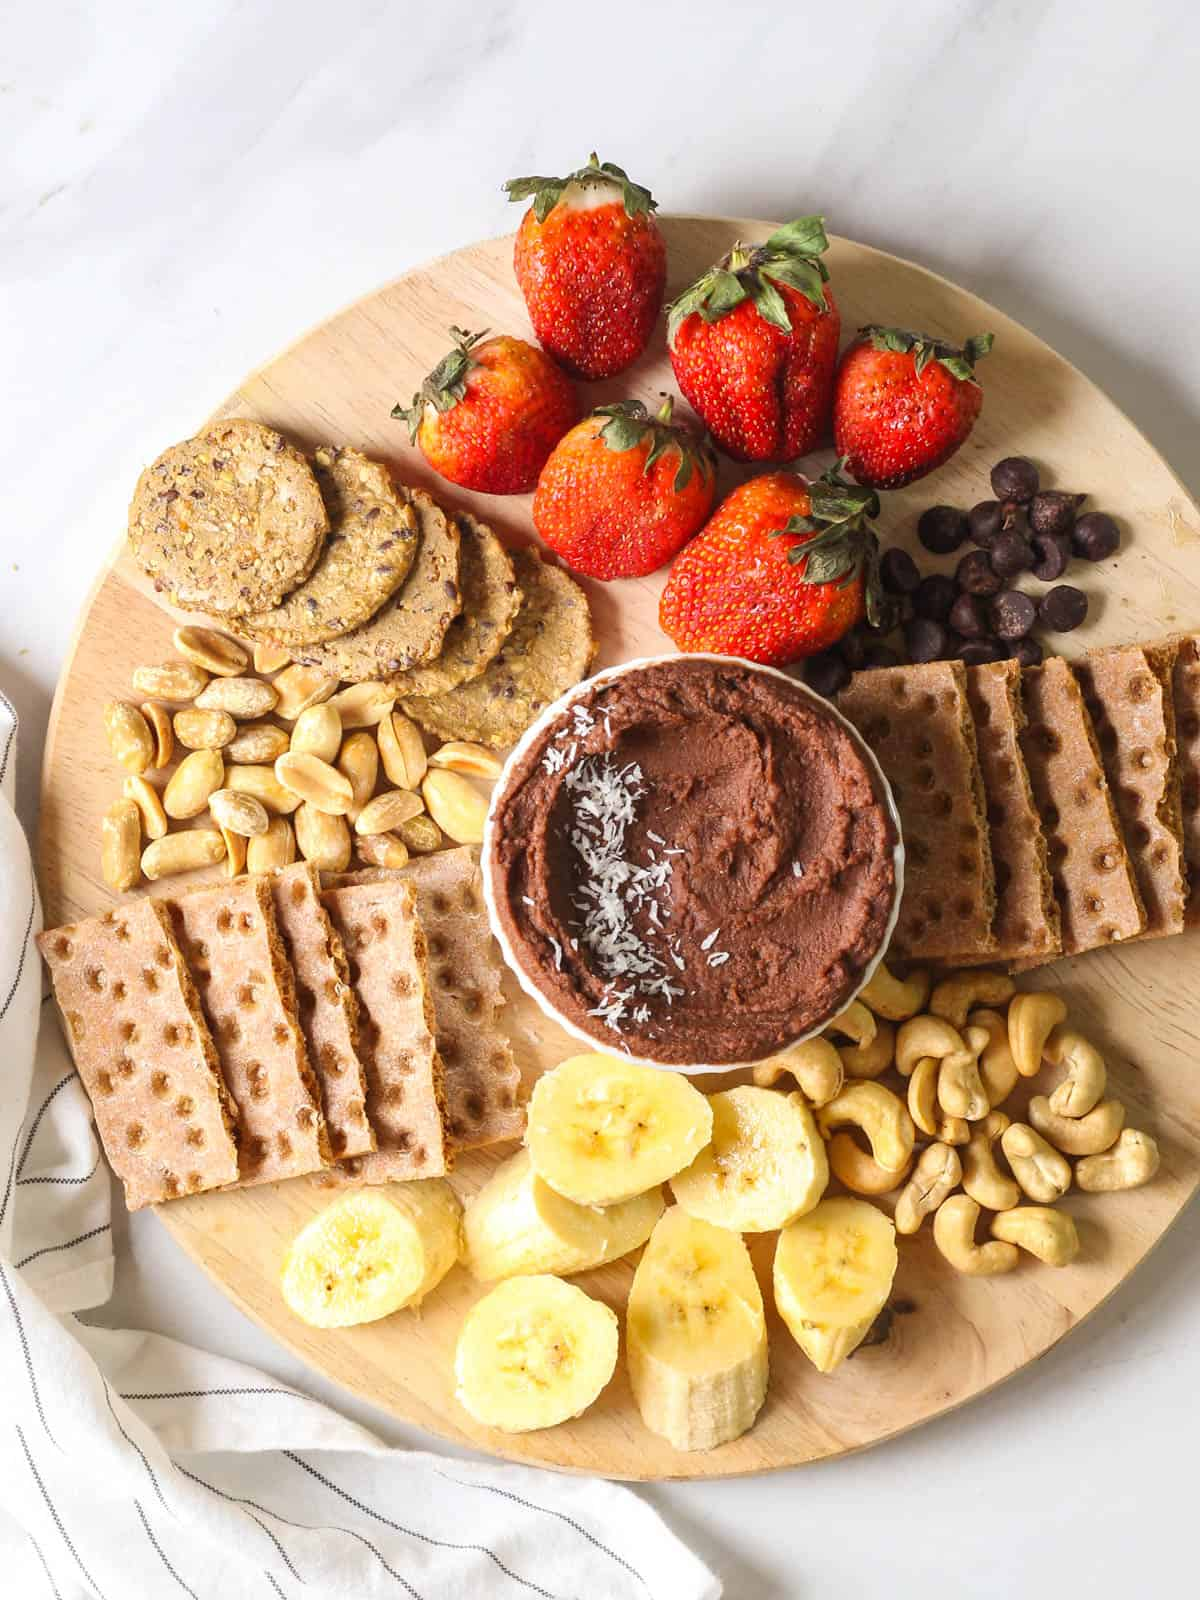 An overhead shot of vegan chocolate hummus served with fruits, nuts and crackers on a wooden chopping board.